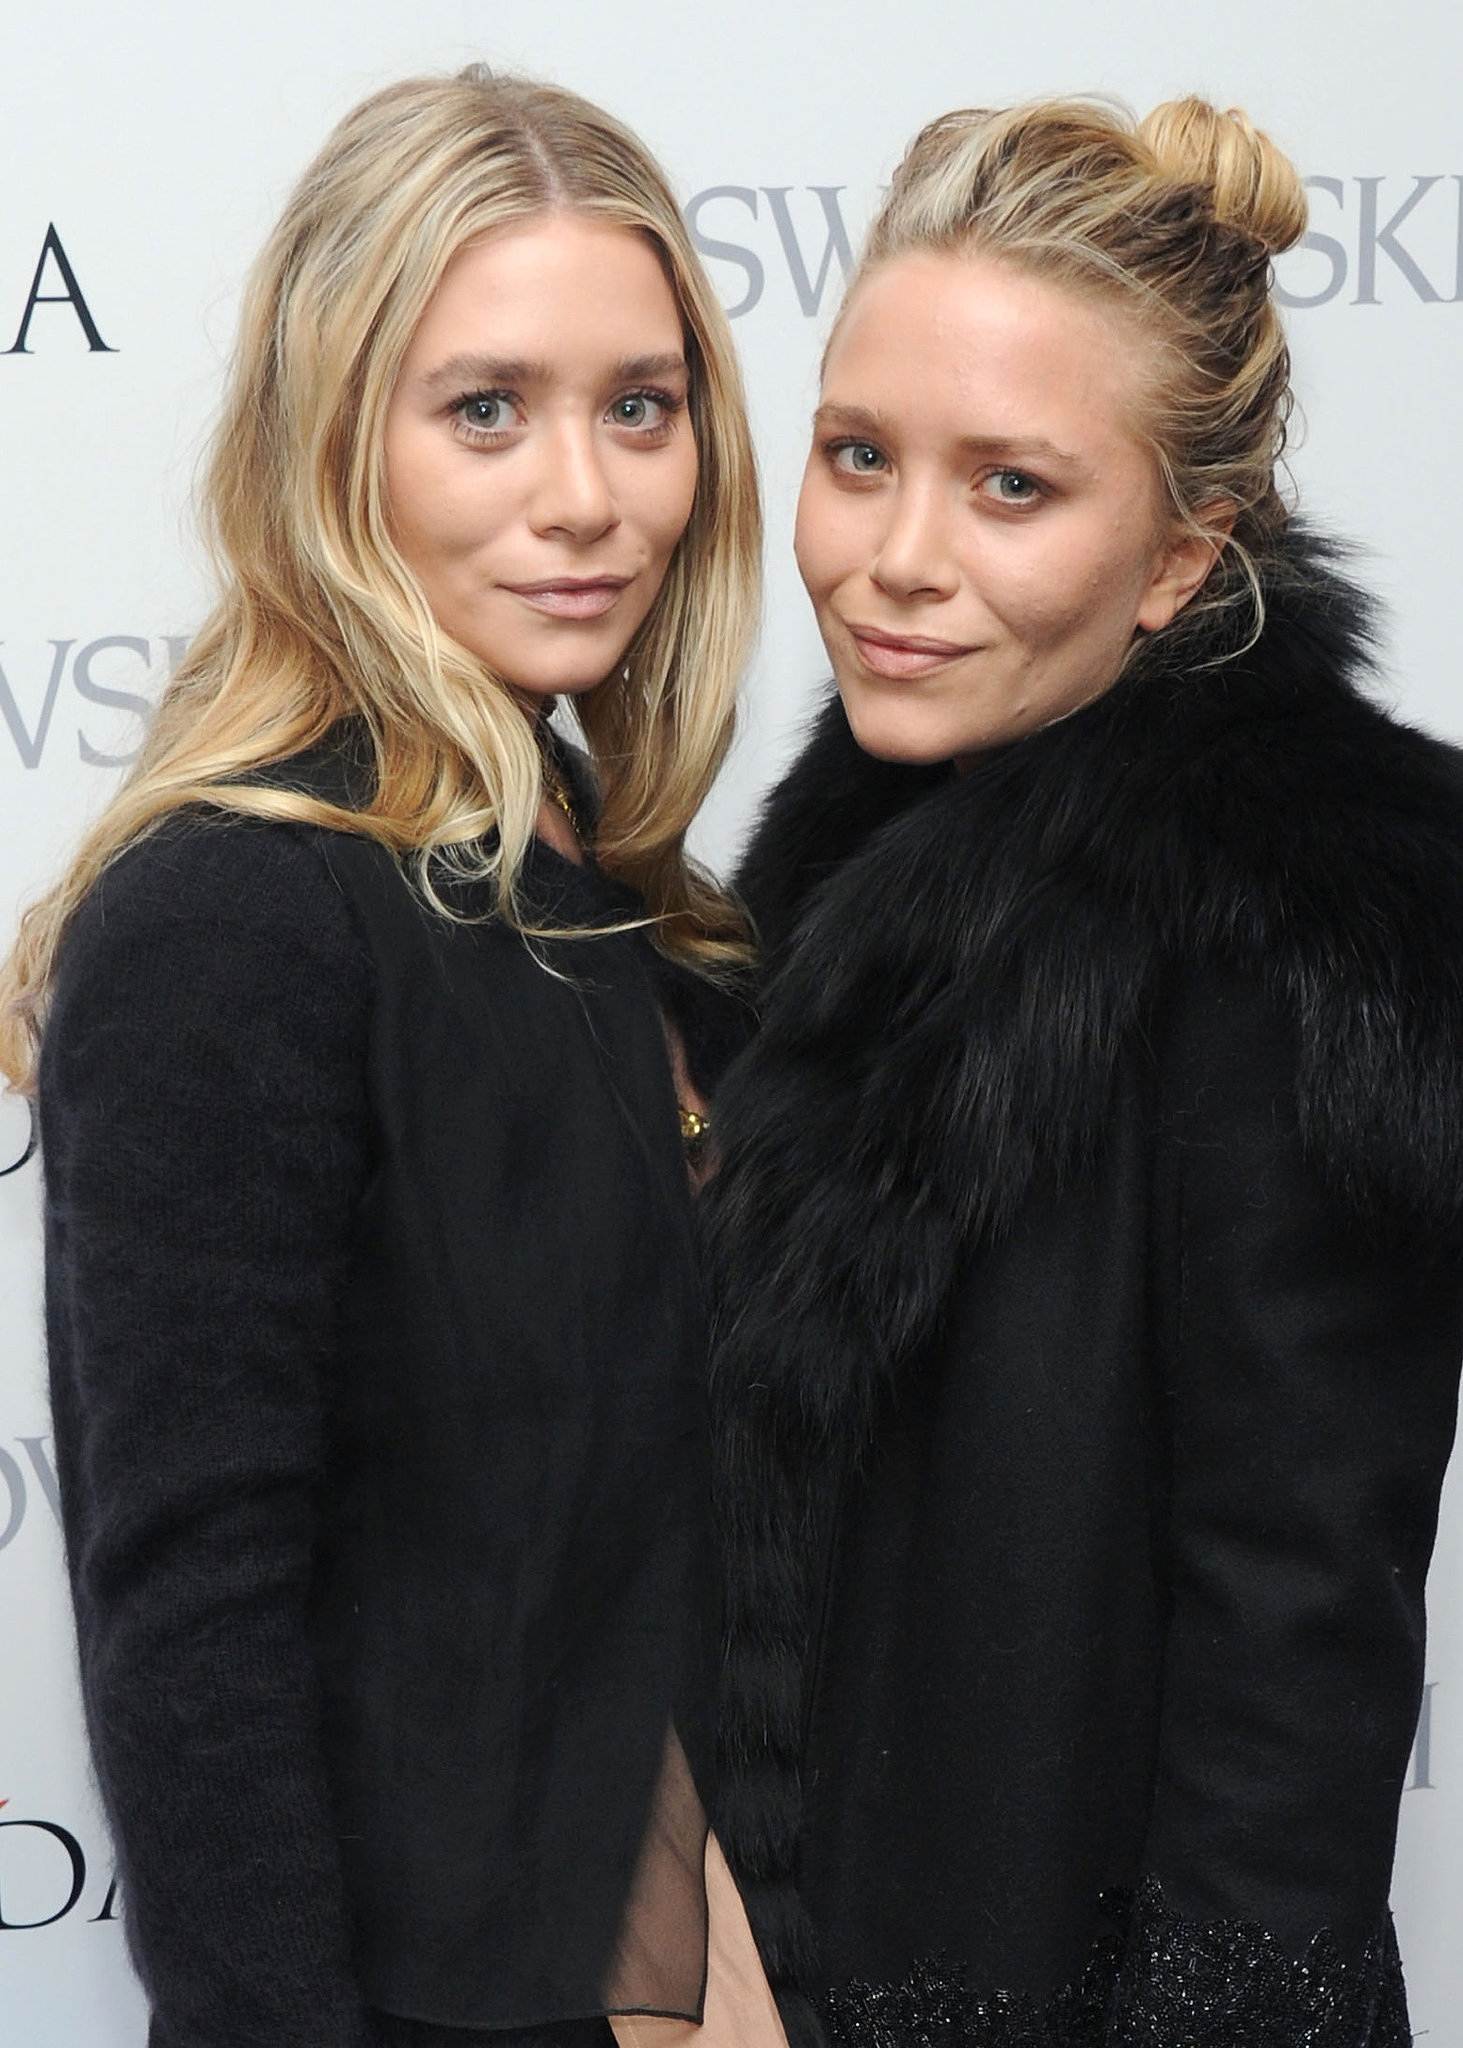 At the 2013 CFDA Award nominations, Ashley and Mary-Kate both had light blond hair, which they paired with a nude makeup palette. Ashley wore her hair down in waves, while Mary-Kate opted for a chic topknot.